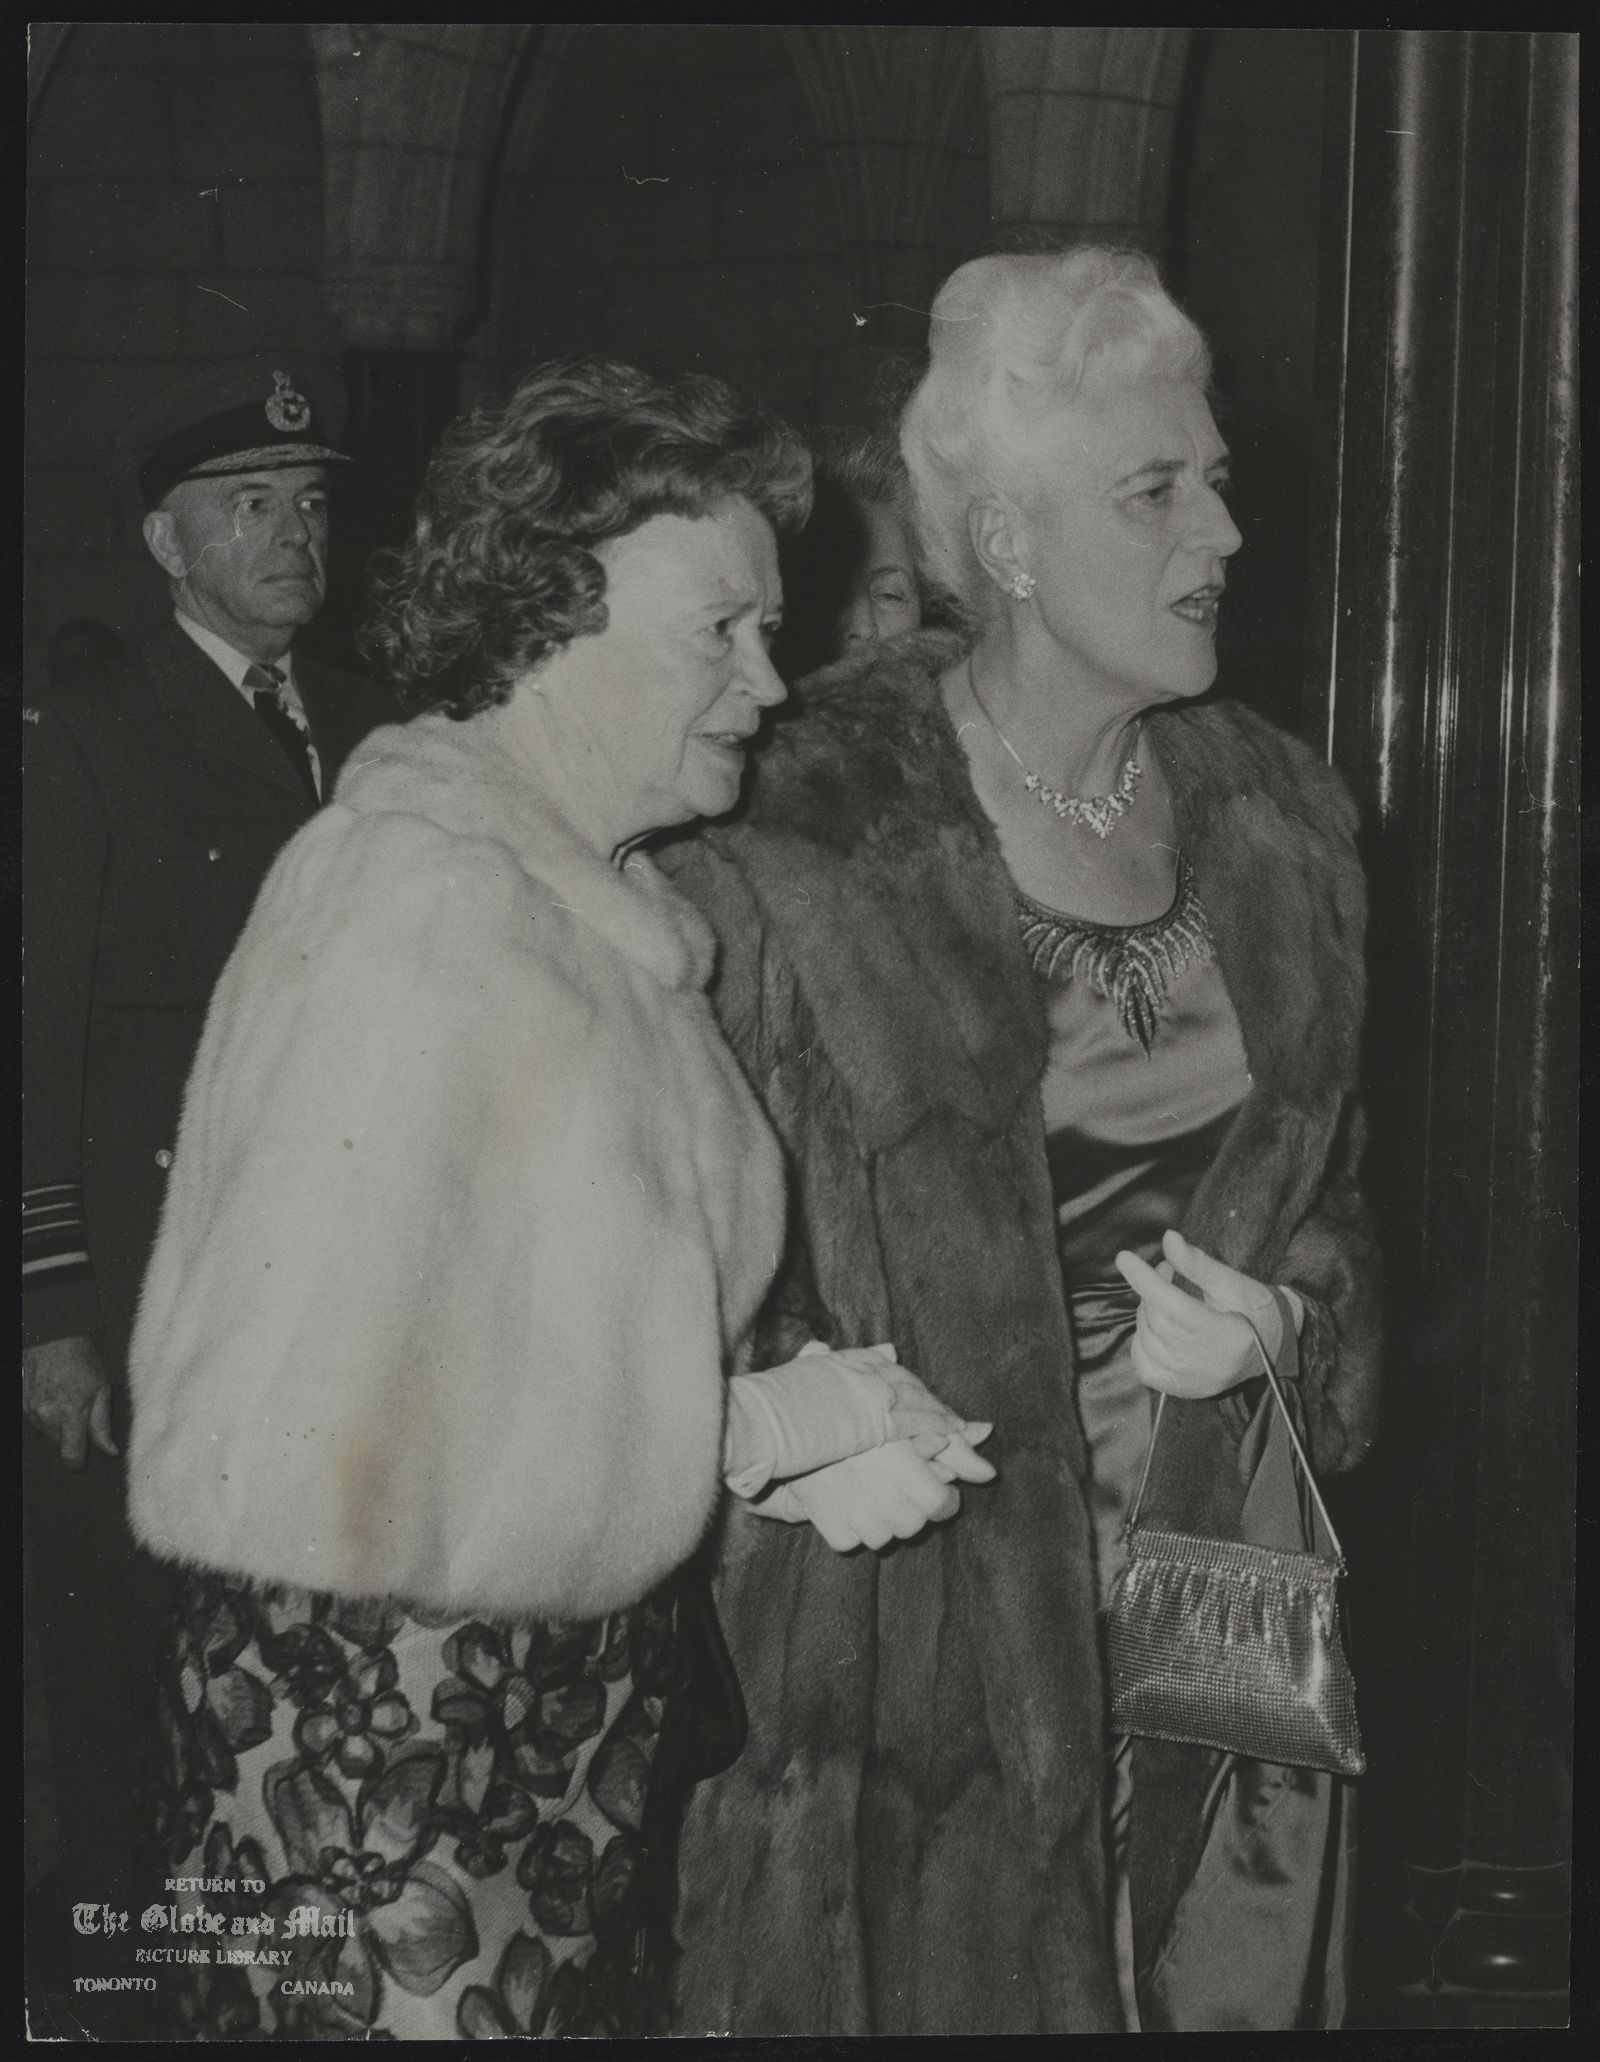 MRS. LESTER B. PEARSON MRS. MARYON PEARSON (LEFT) AND MME. VANIER AT OPENING OF 27TH PARLIAMENT IN OTTAWA, JAN. 18, 1966